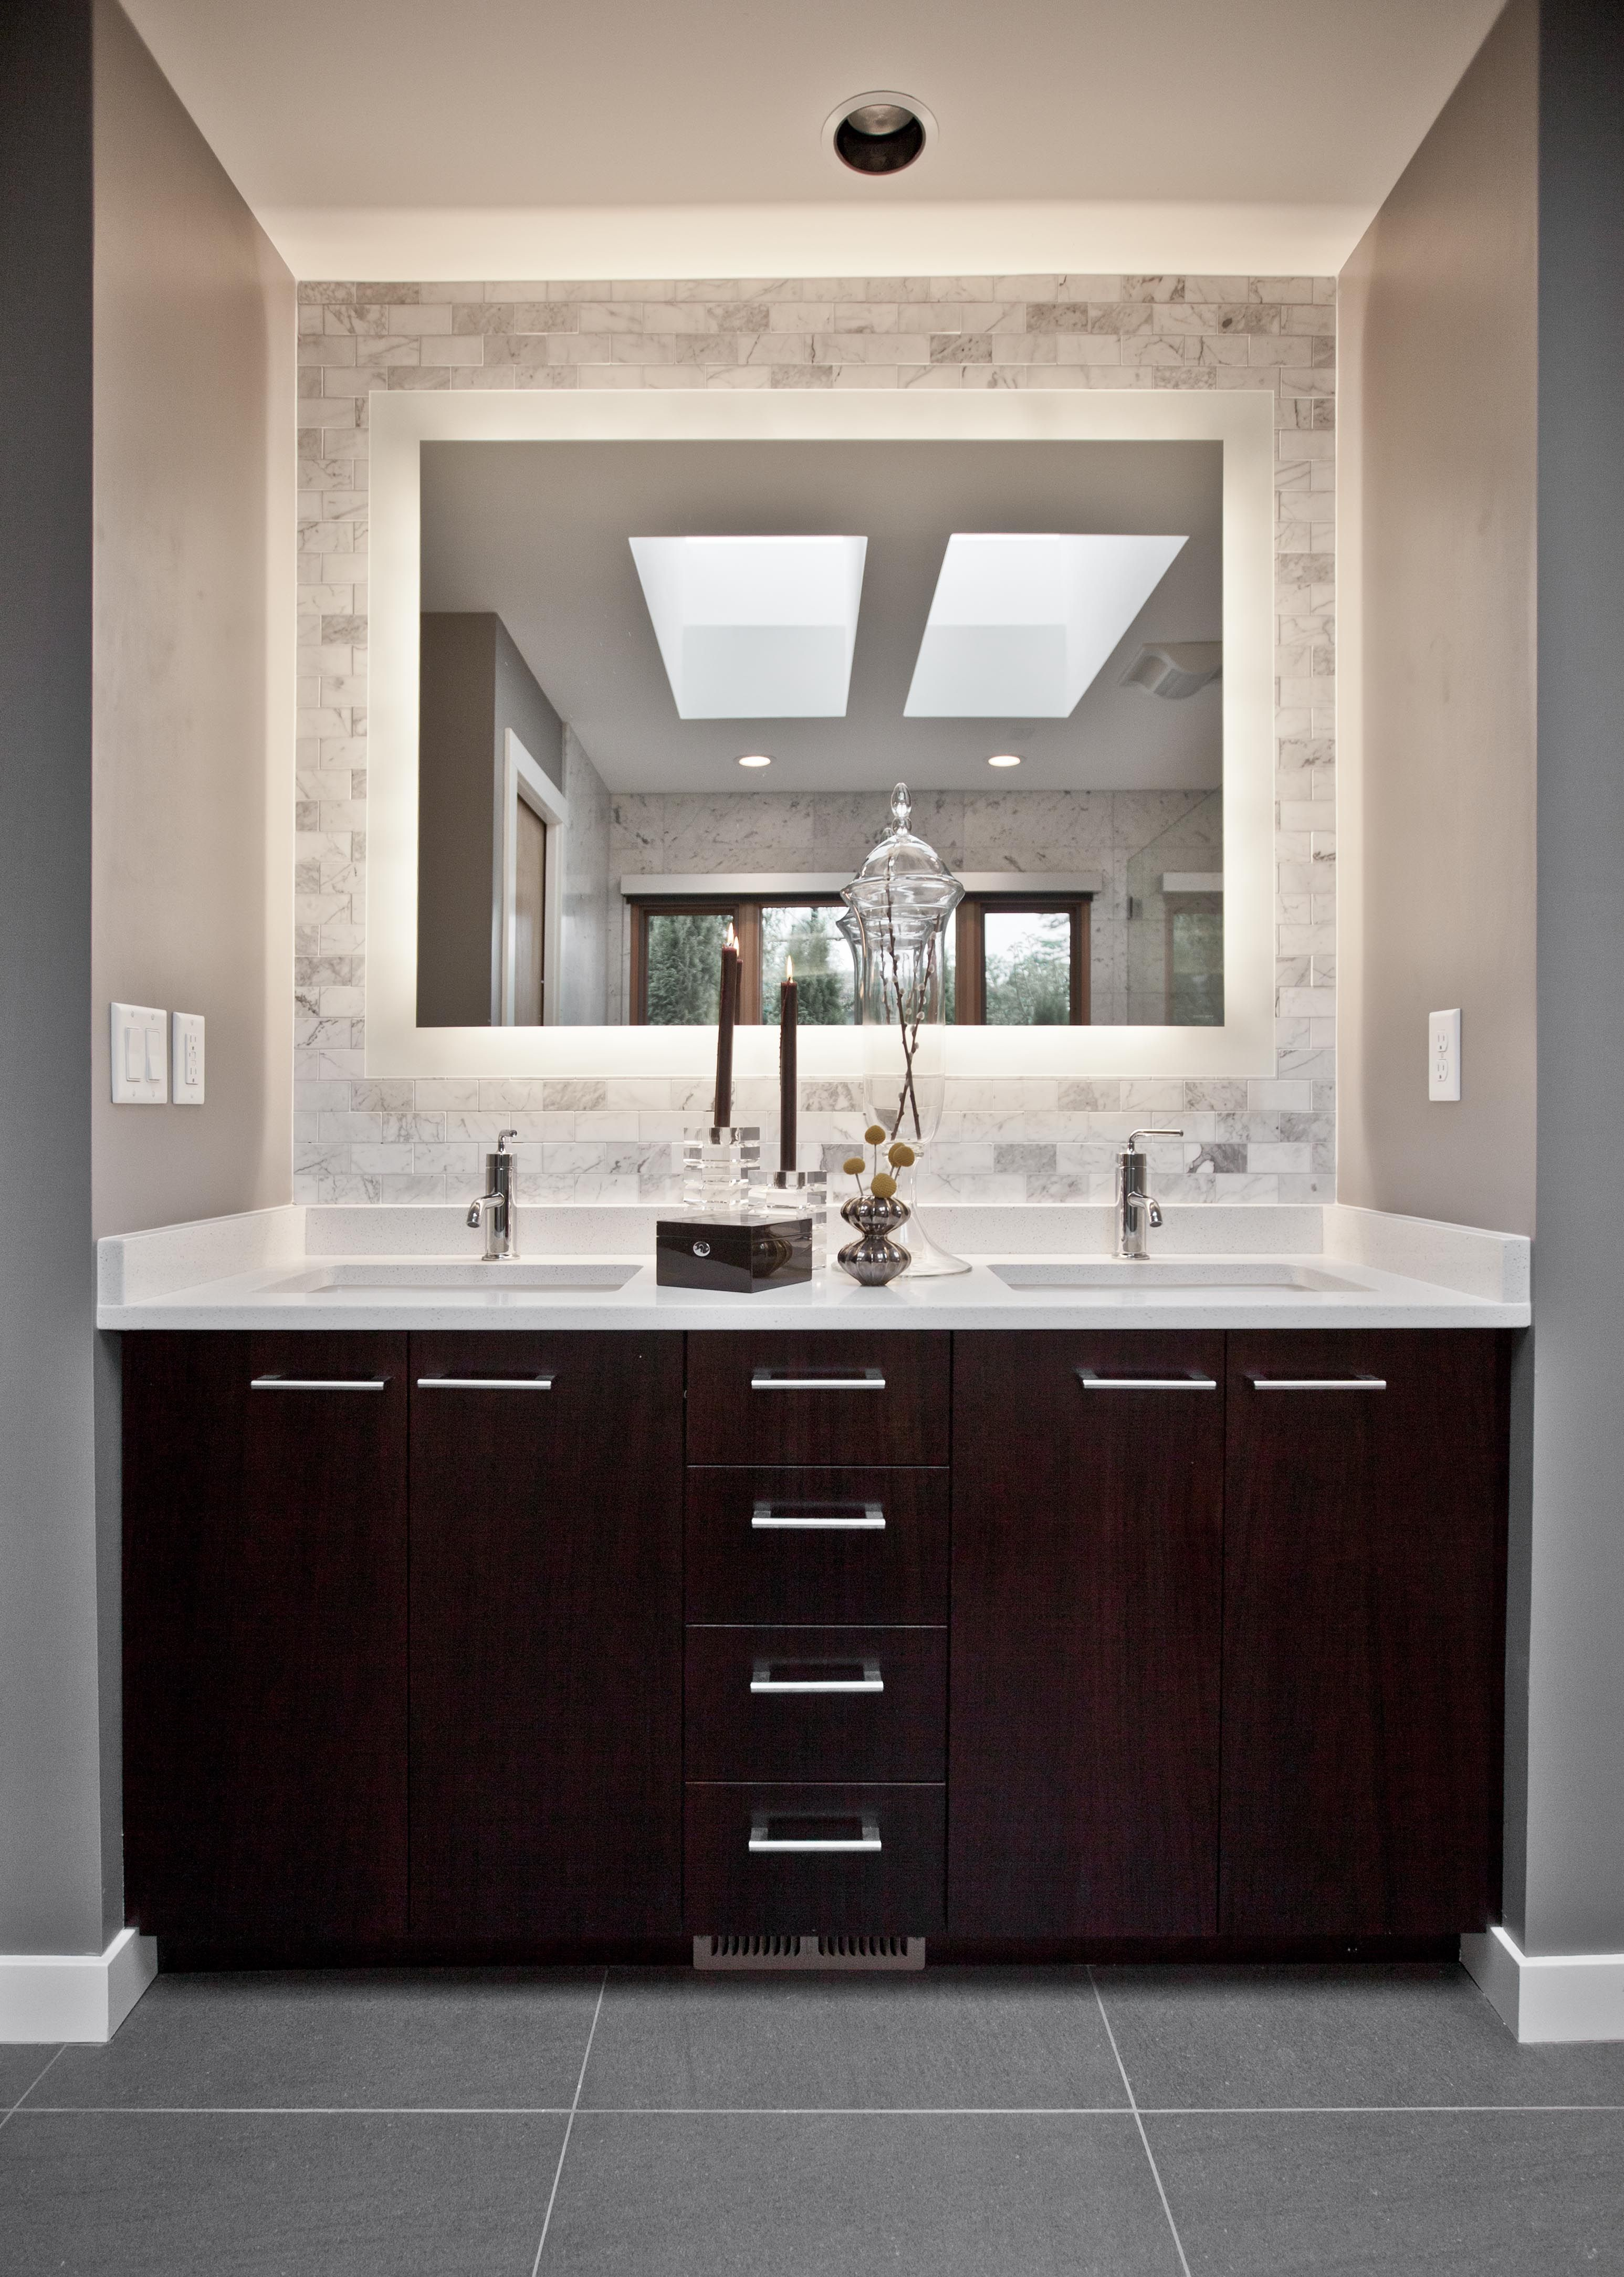 White Bathroom Vanity Ideas 45 Relaxing Bathroom Vanity Inspirations My Dream Home